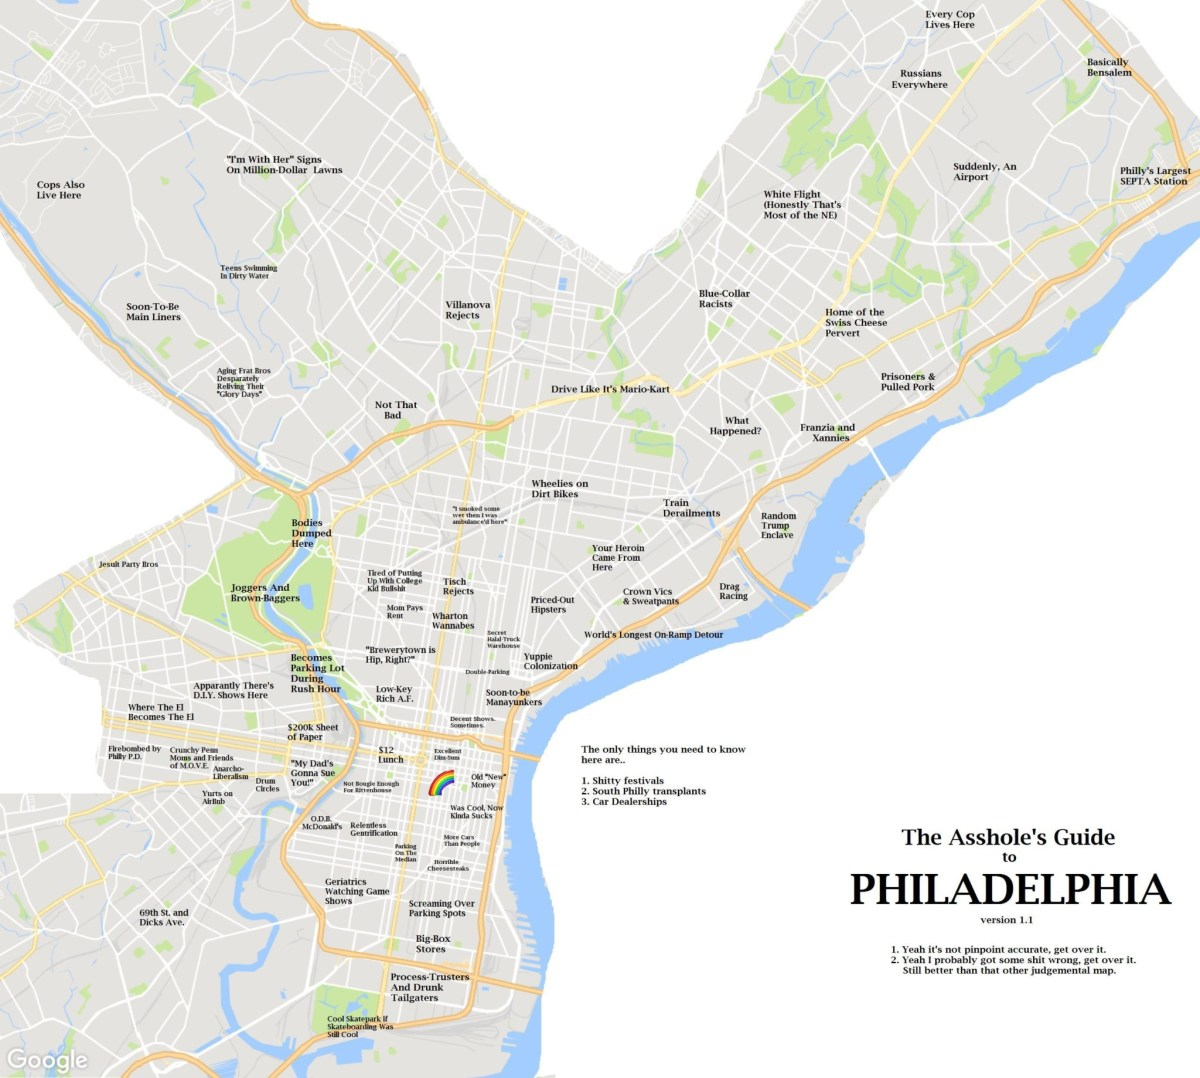 A Reddit User Made The Asshole's Guide To Philadelphia